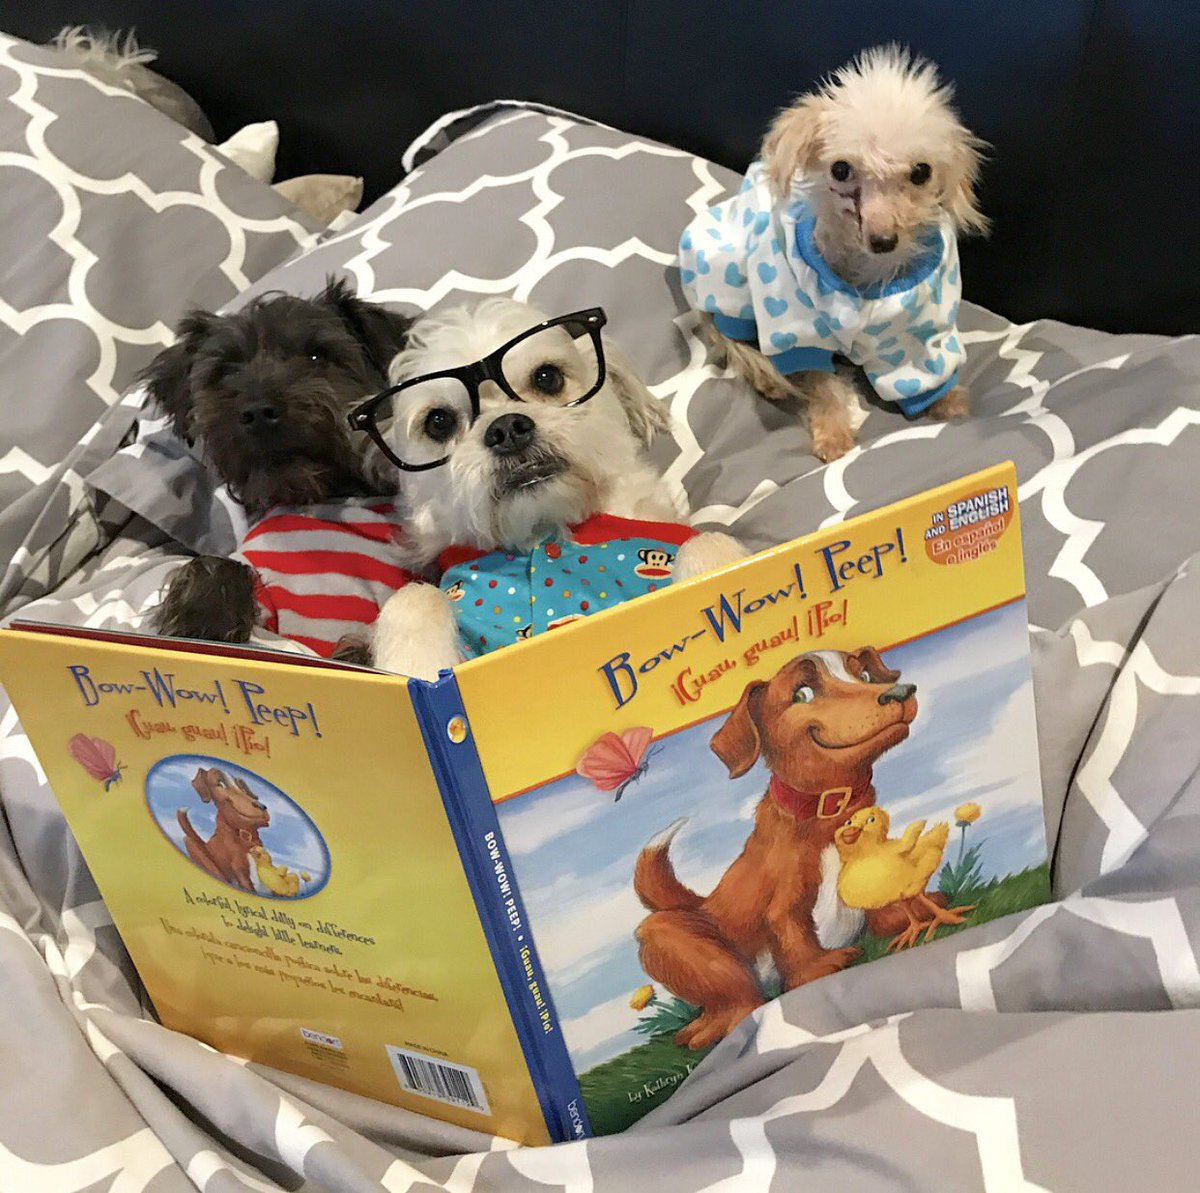 Hey, you interrupted story time. I was just getting to the part where the rescue dog finds a forever home!  #austin <br>http://pic.twitter.com/wbmYVmXSwe